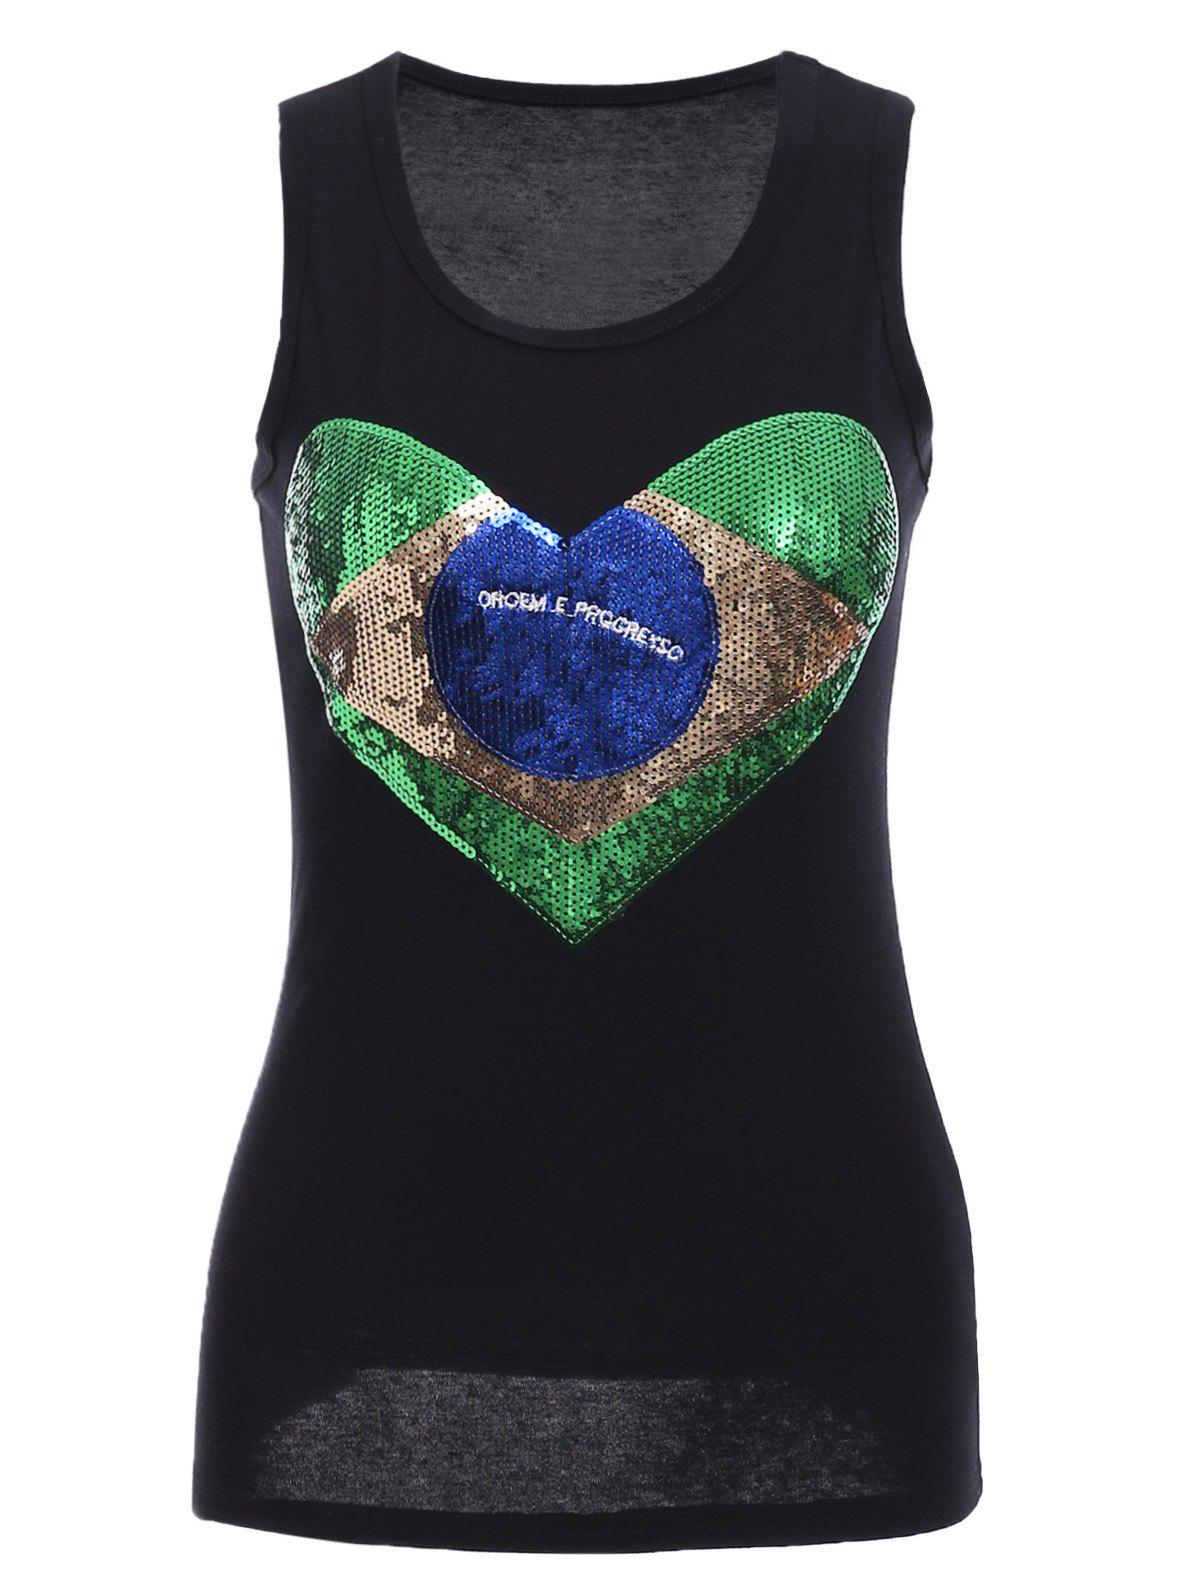 Chic Sequins Graphic Racerback Tank Top